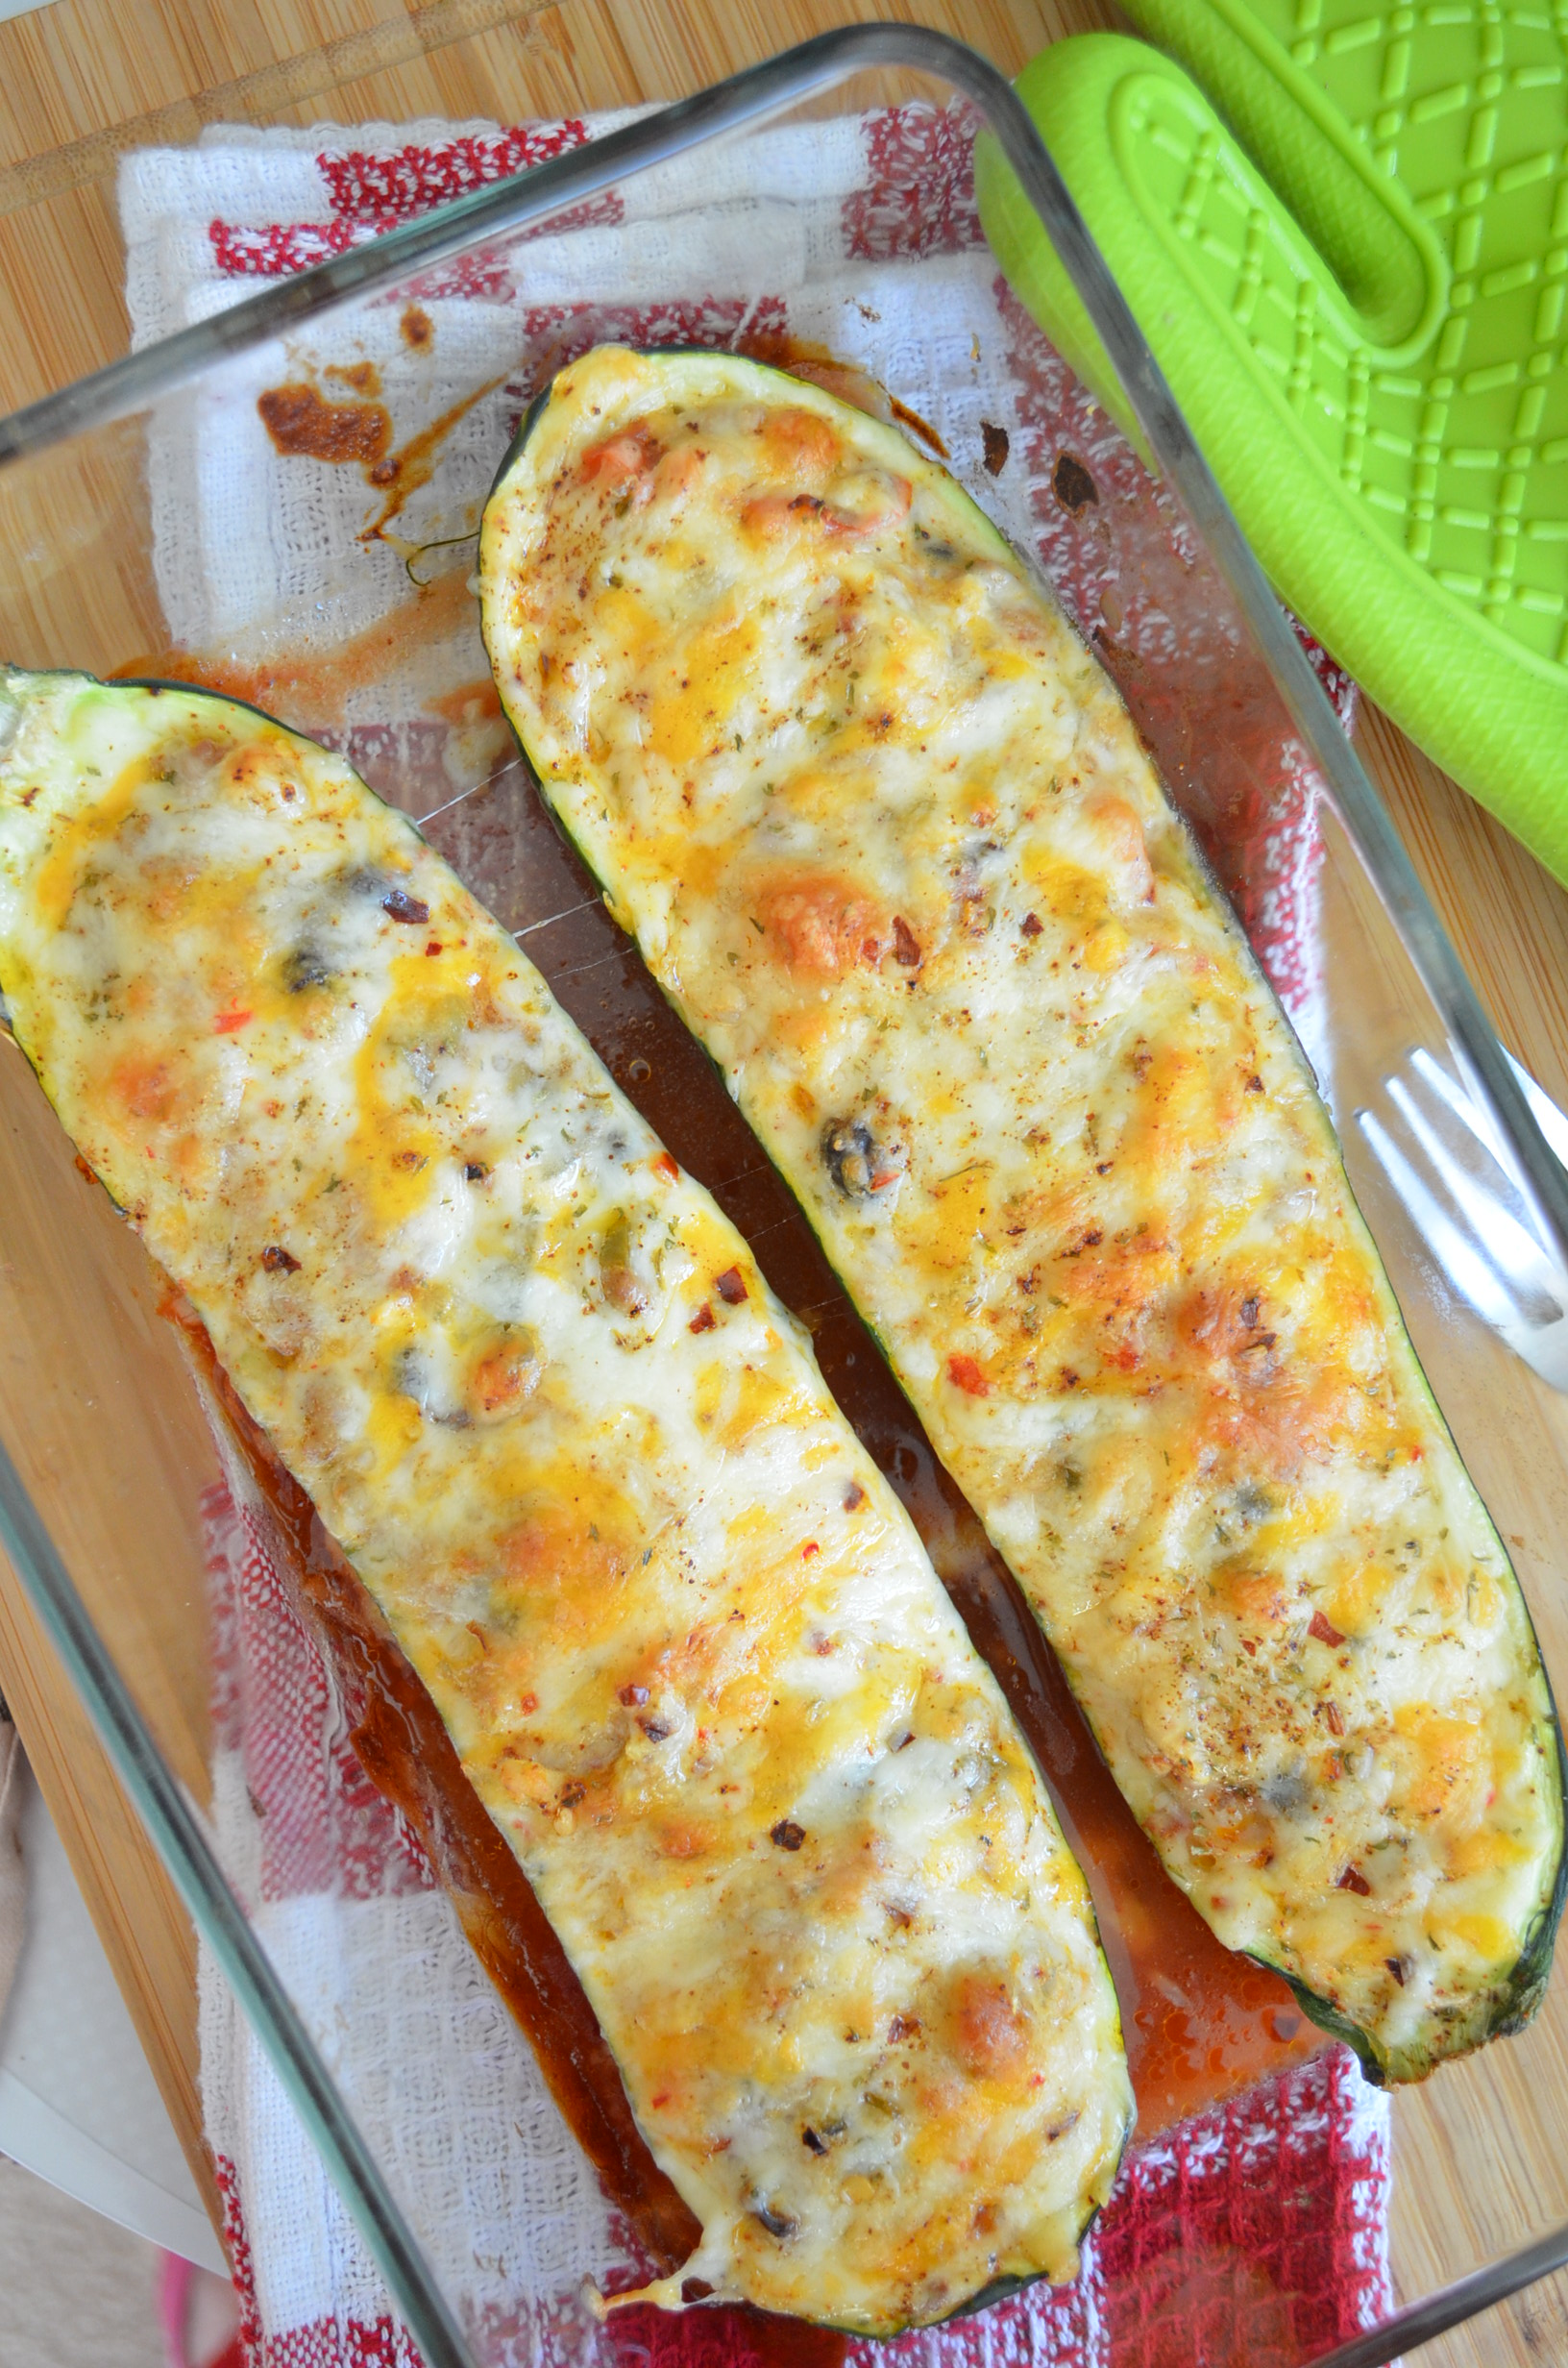 Chili and Cheese Zucchini Stuffed Boat